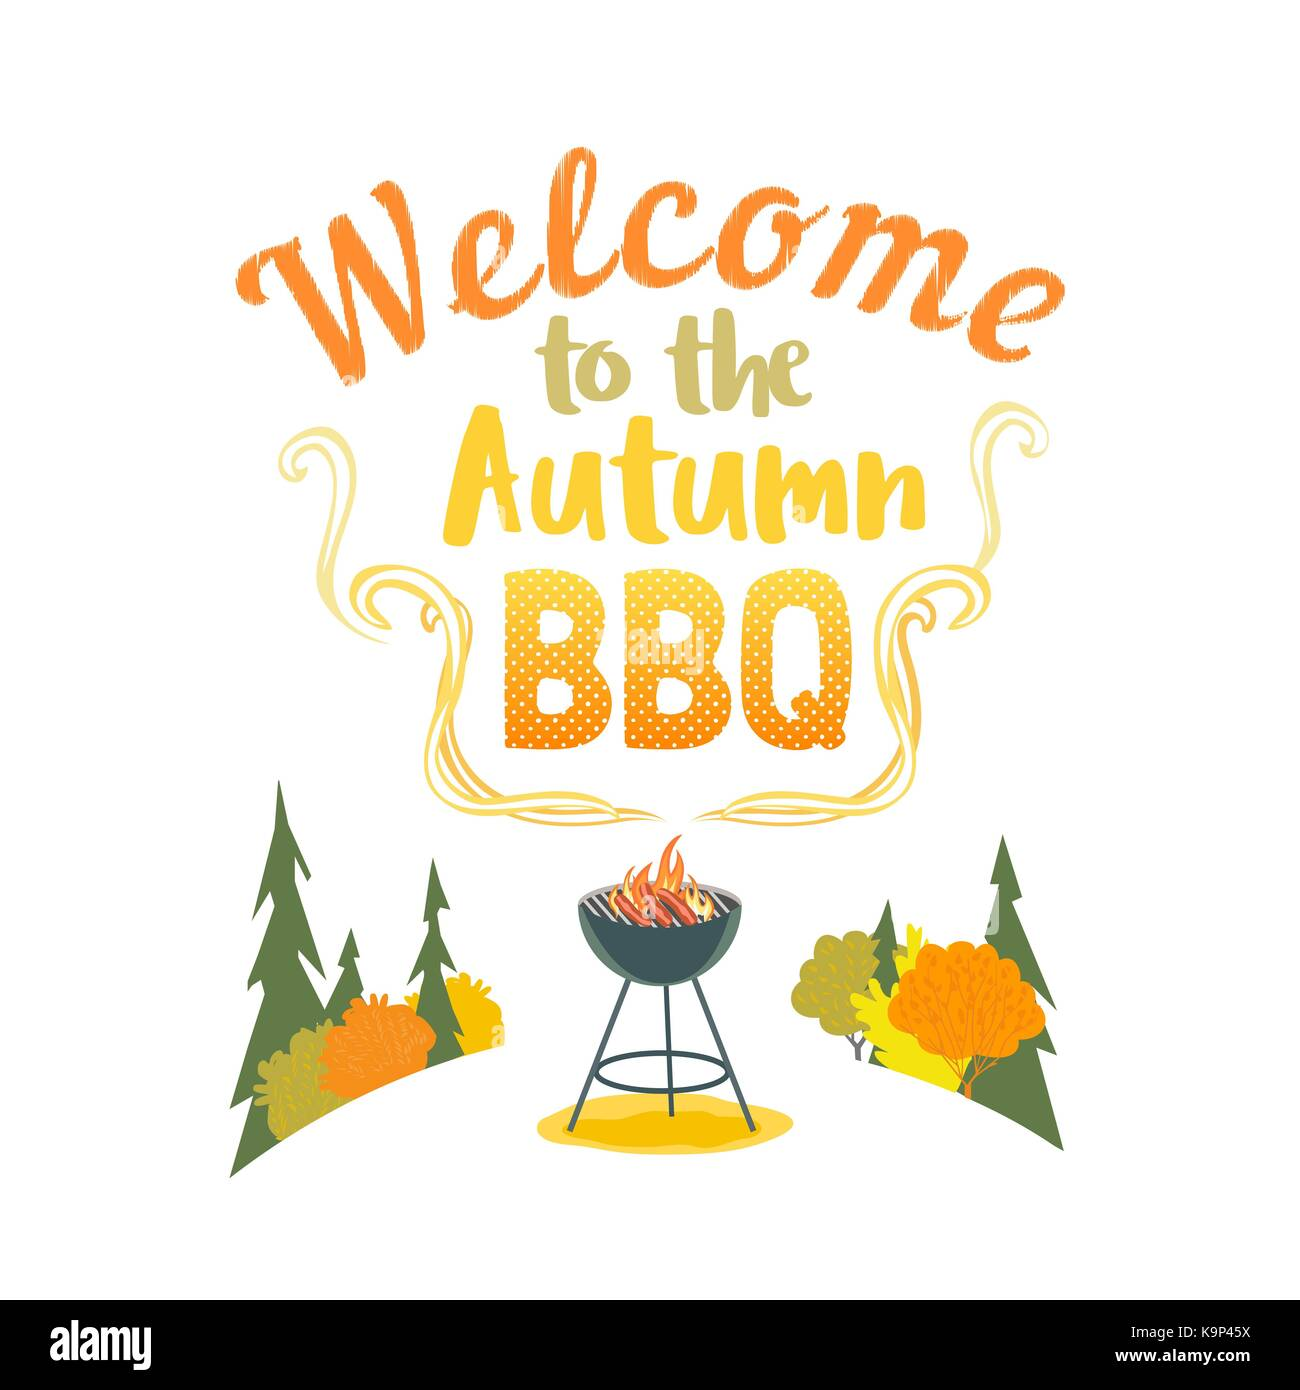 Autumn outdoors concept. Cartoon retro style poster. Welcome invitation to barbecue picnic. Season fall holiday - Stock Image